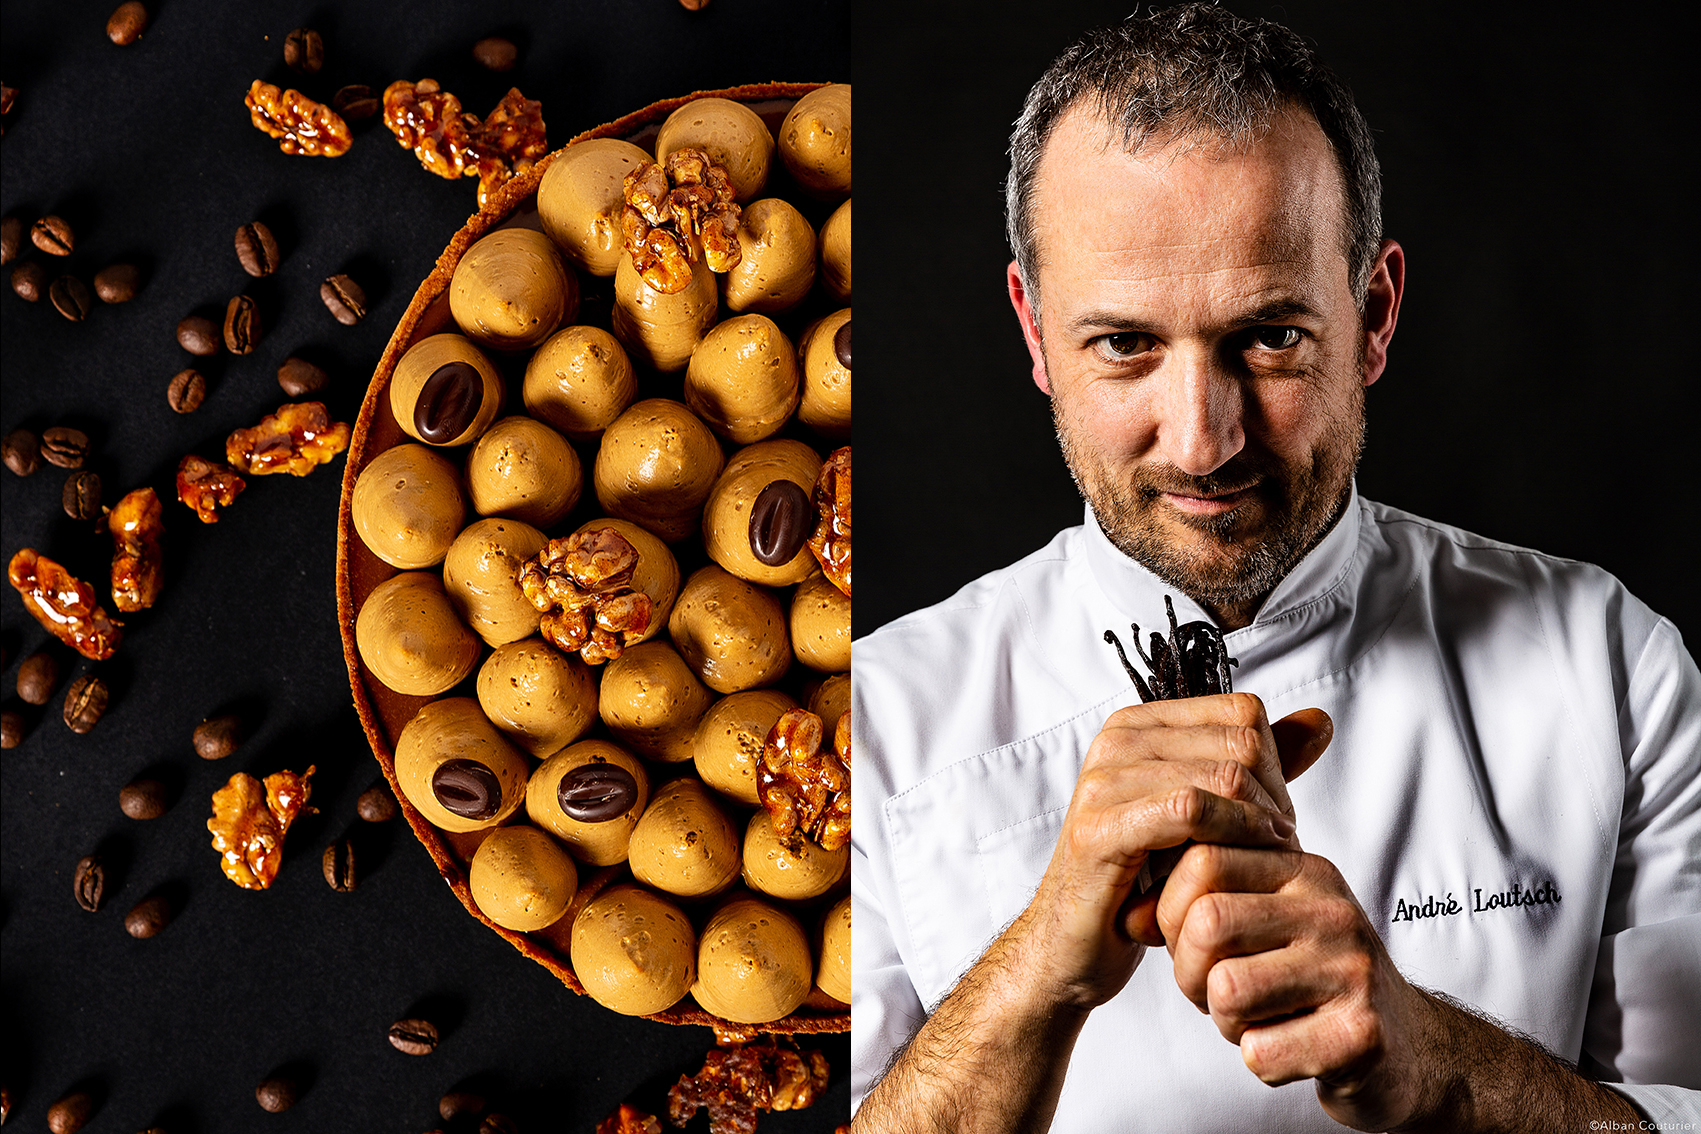 Tarte cafe et noix caramelise, chef patissier Andre Loutsch, ©Alban Couturier